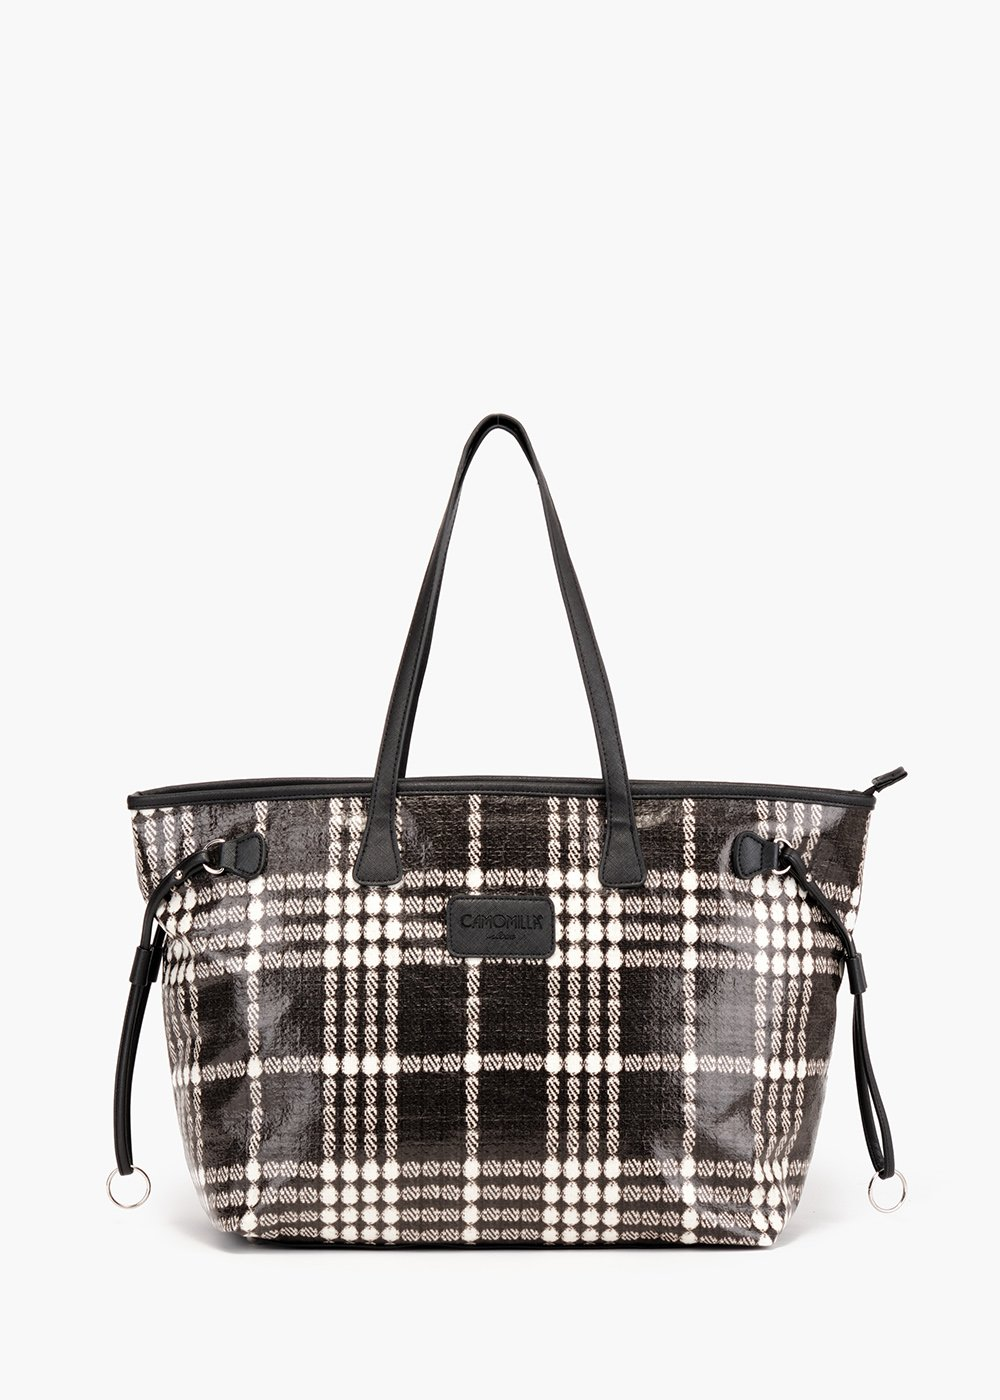 Nelly Tartan shopping bag in bonded fabric - Black / White Fantasia - Woman